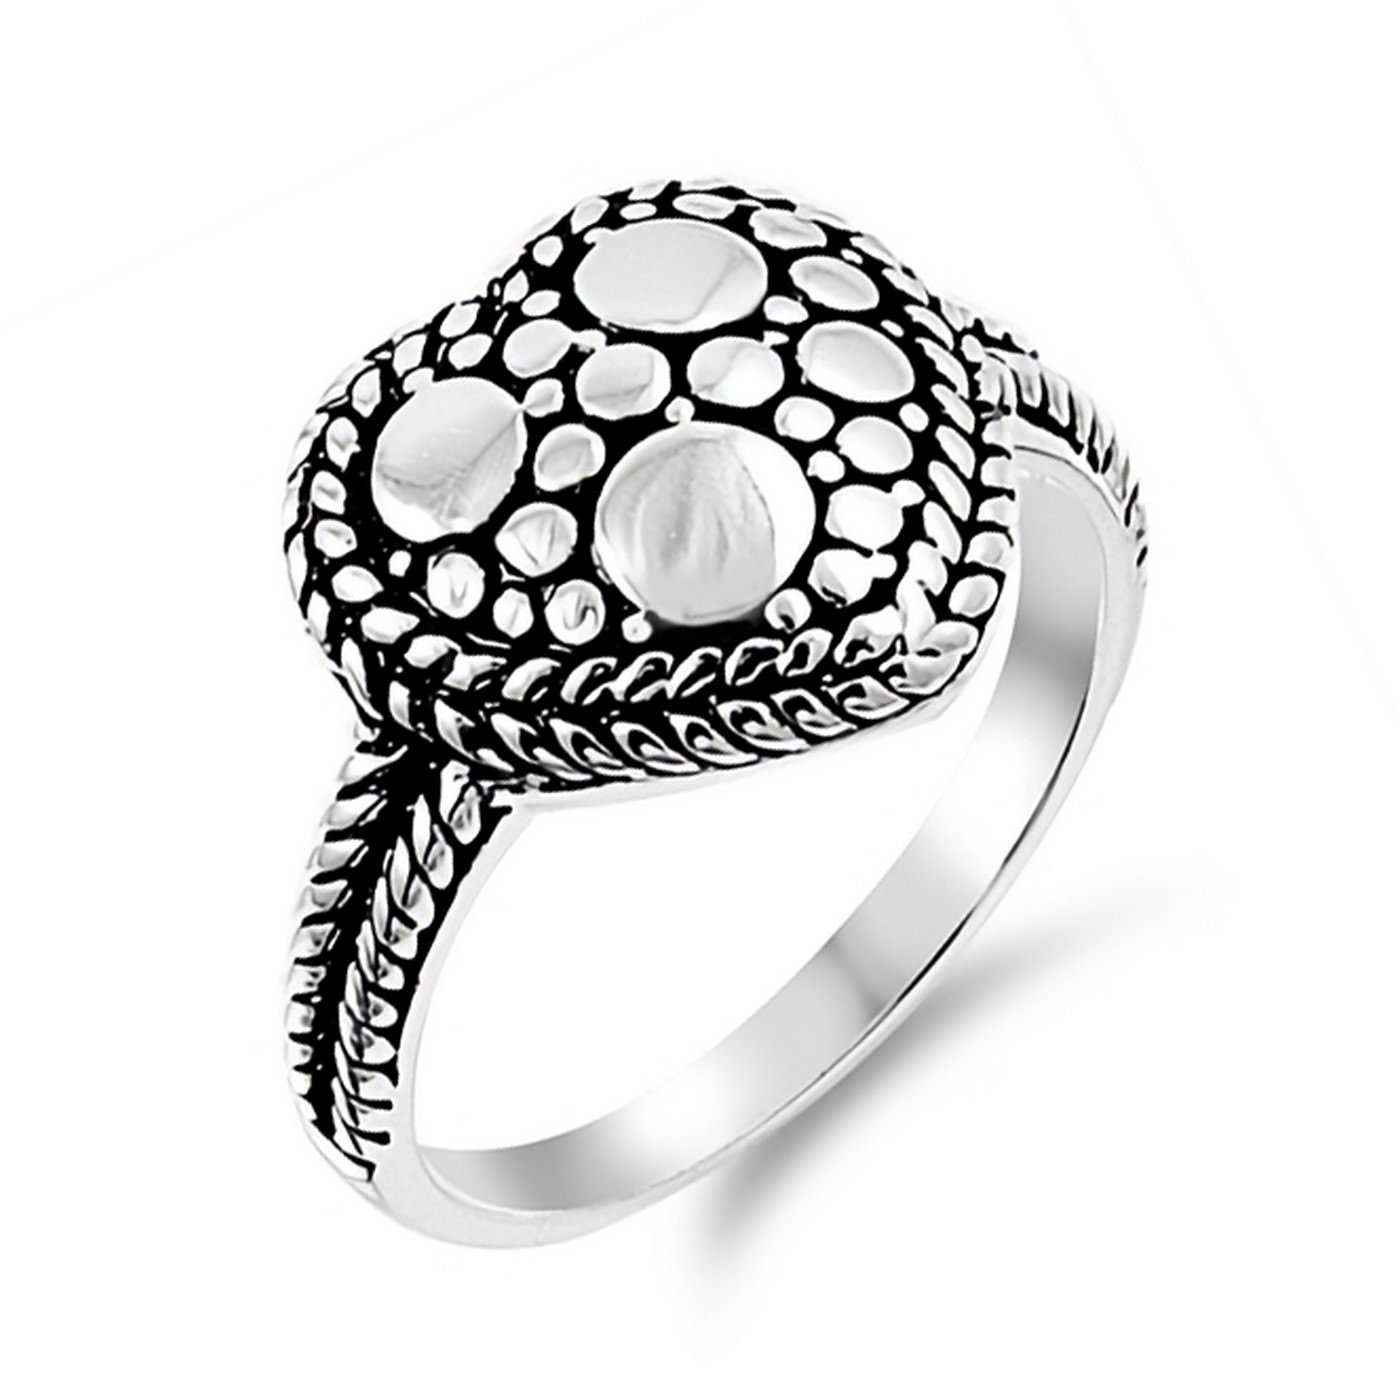 14mm Oxidized Heart Shape Rope Frame Womens Ring 925 Sterling Silver Sizes 5-9